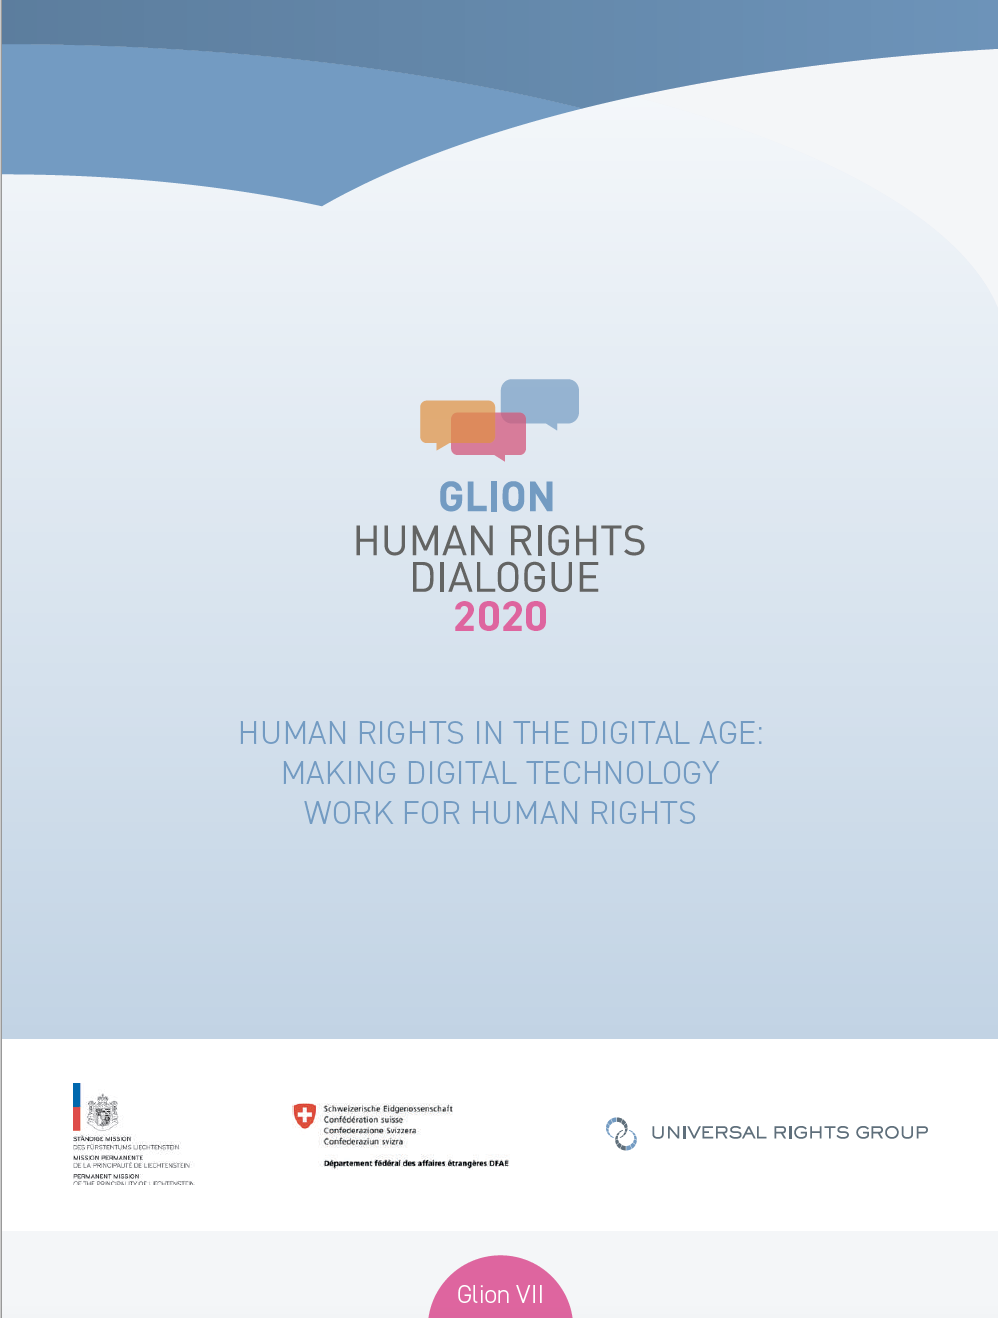 Human rights in the digital age: Making digital technology work for human rights